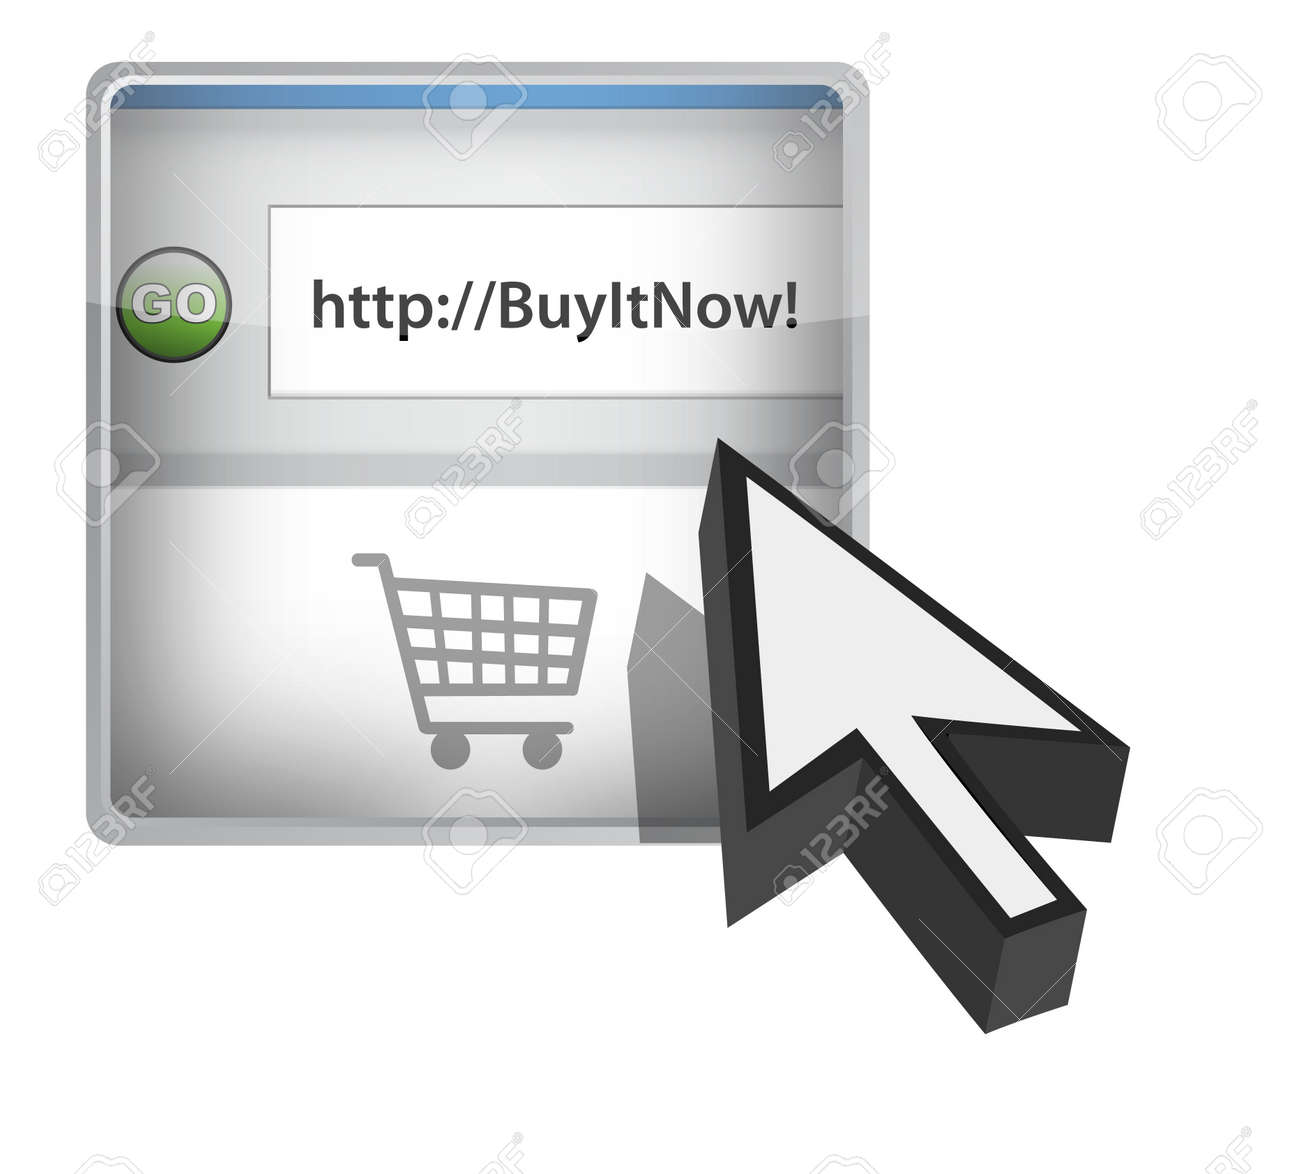 buy it now browser button with cursor illustration design royalty Http://previews.123rf.com/images/alexmillos/alexmillos1112/alexmillos111200071/11662175-Buy-it-now-browser-button-with-cursor-illustration-design-Stock-Vector.jpg